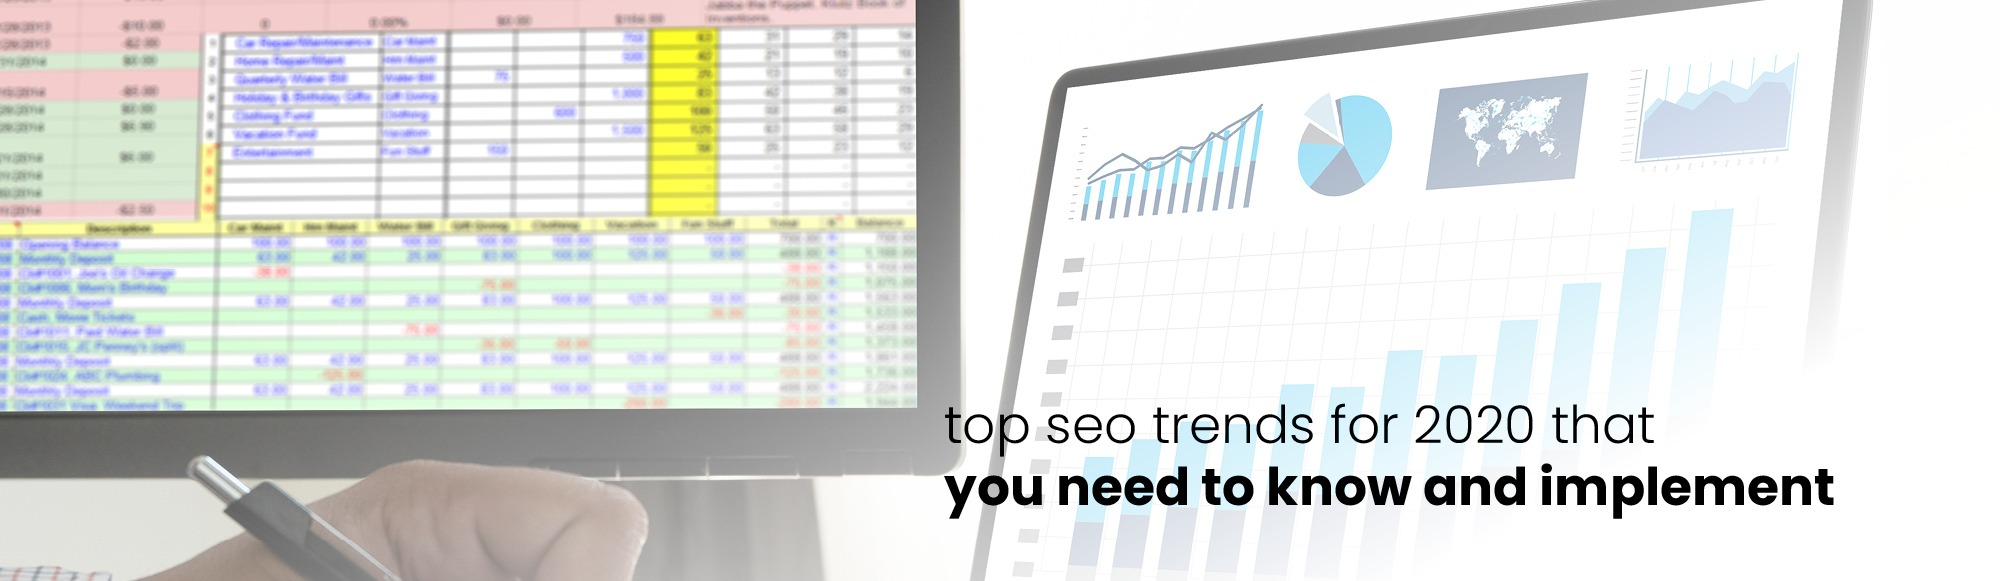 SEO Trends to Be Aware of in 2020